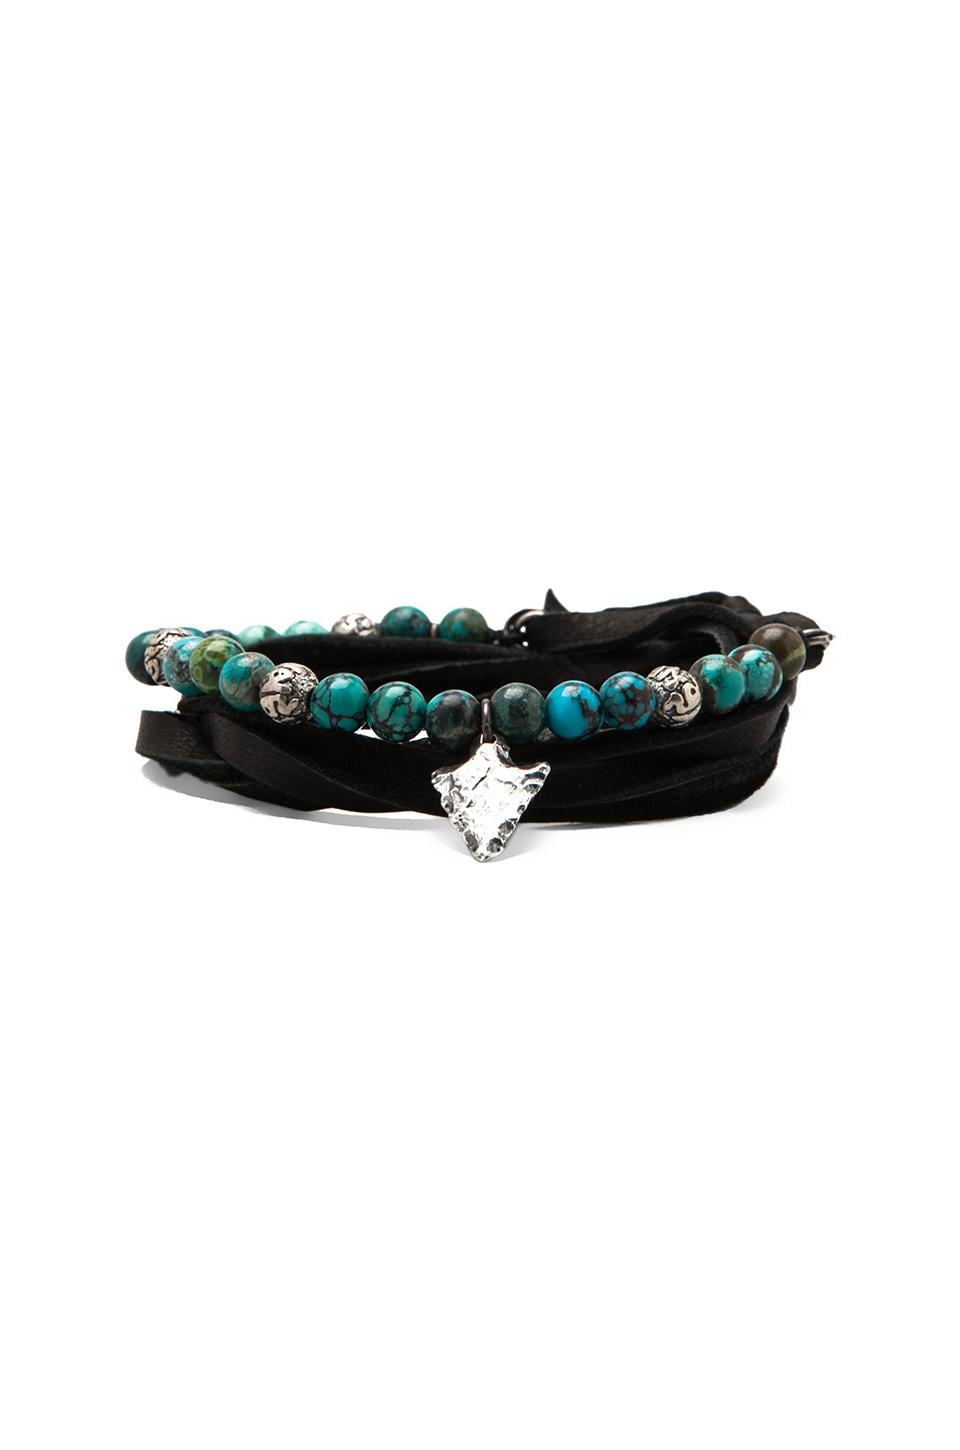 M.Cohen Three Wrap Leather and Stones Bracelet in Turquoise Arrow